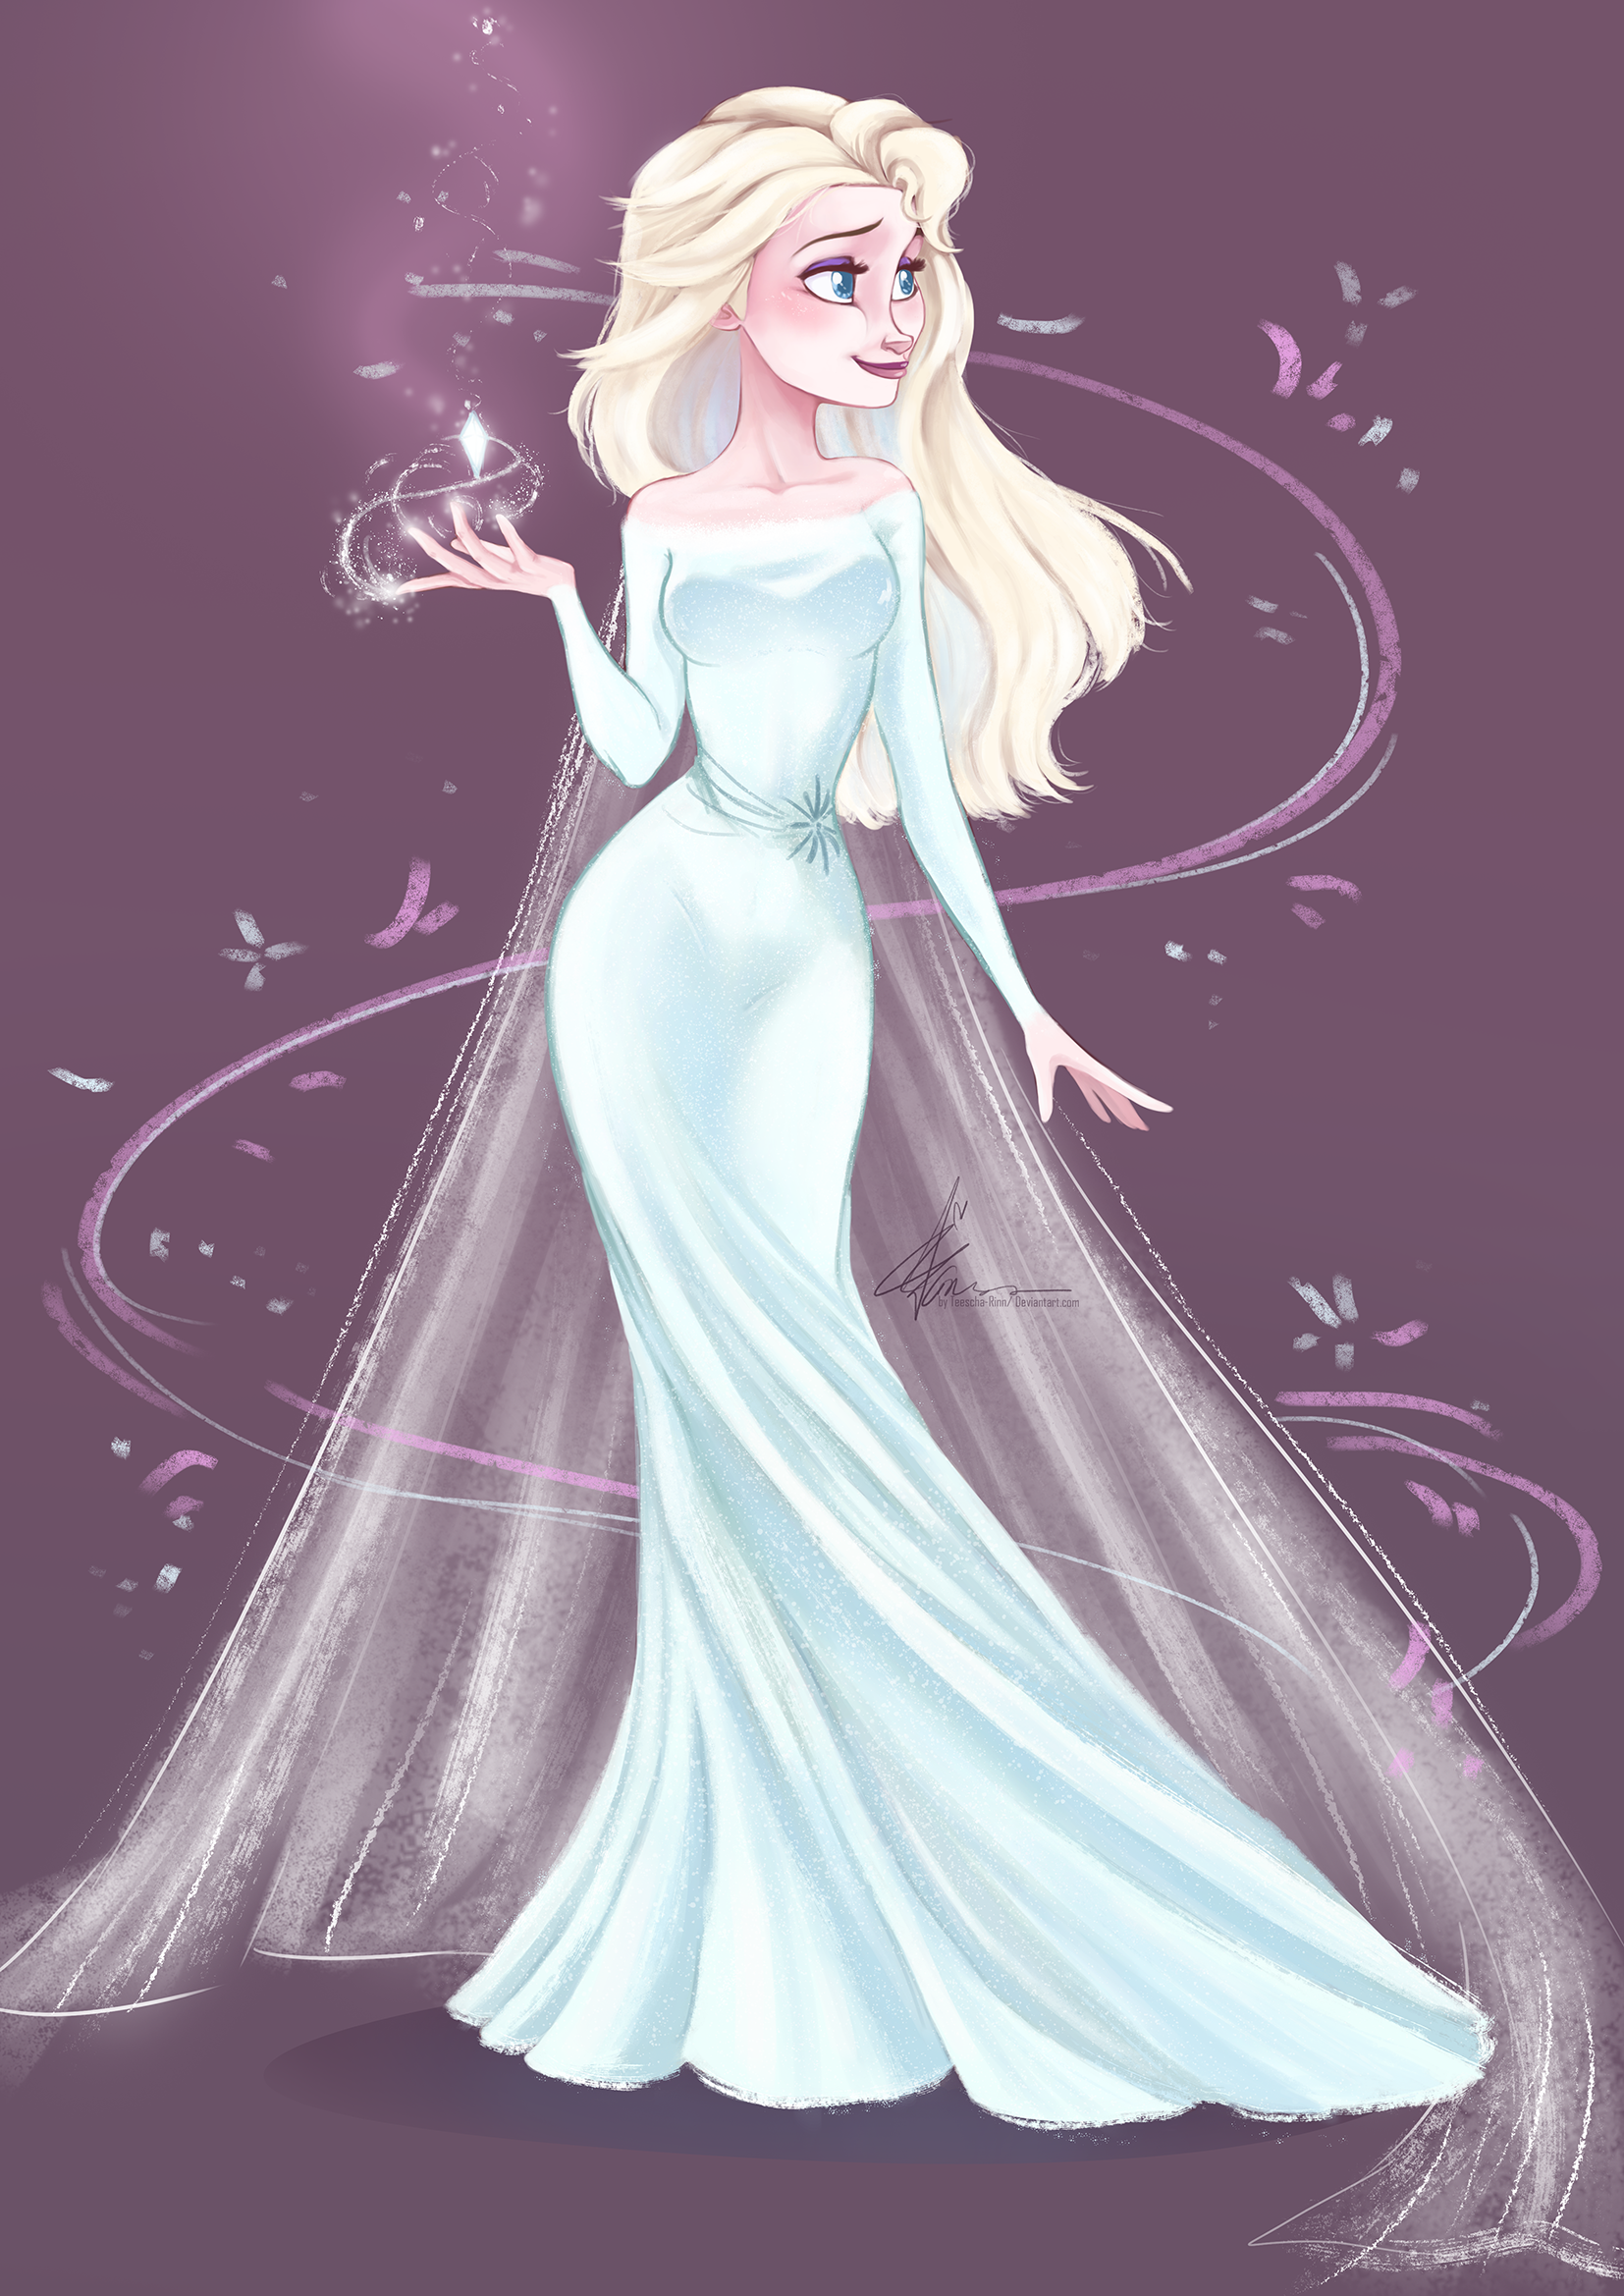 Elsa Frozen 2 Print Drawing Magic Dress Disney Illustration Digital Home In 2020 Disney Princess Elsa Disney Princess Drawings Disney Princess Dresses